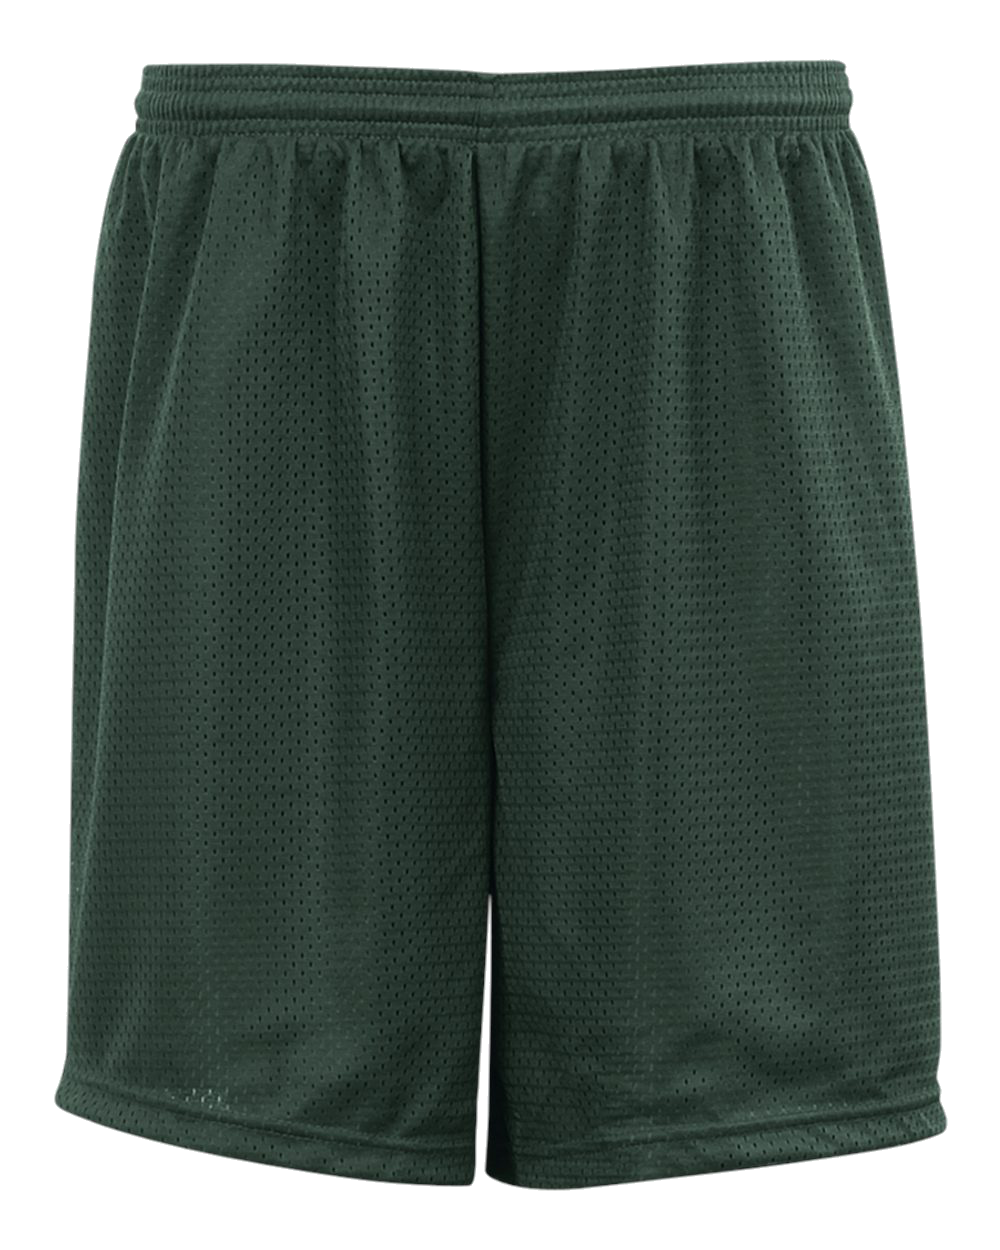 Mesh/Tricot 9 Inch Short - Forest